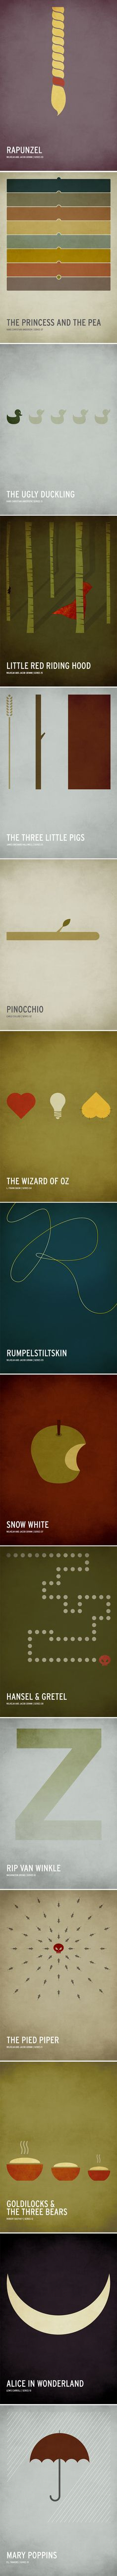 Minimalist Posters of Children's Books…